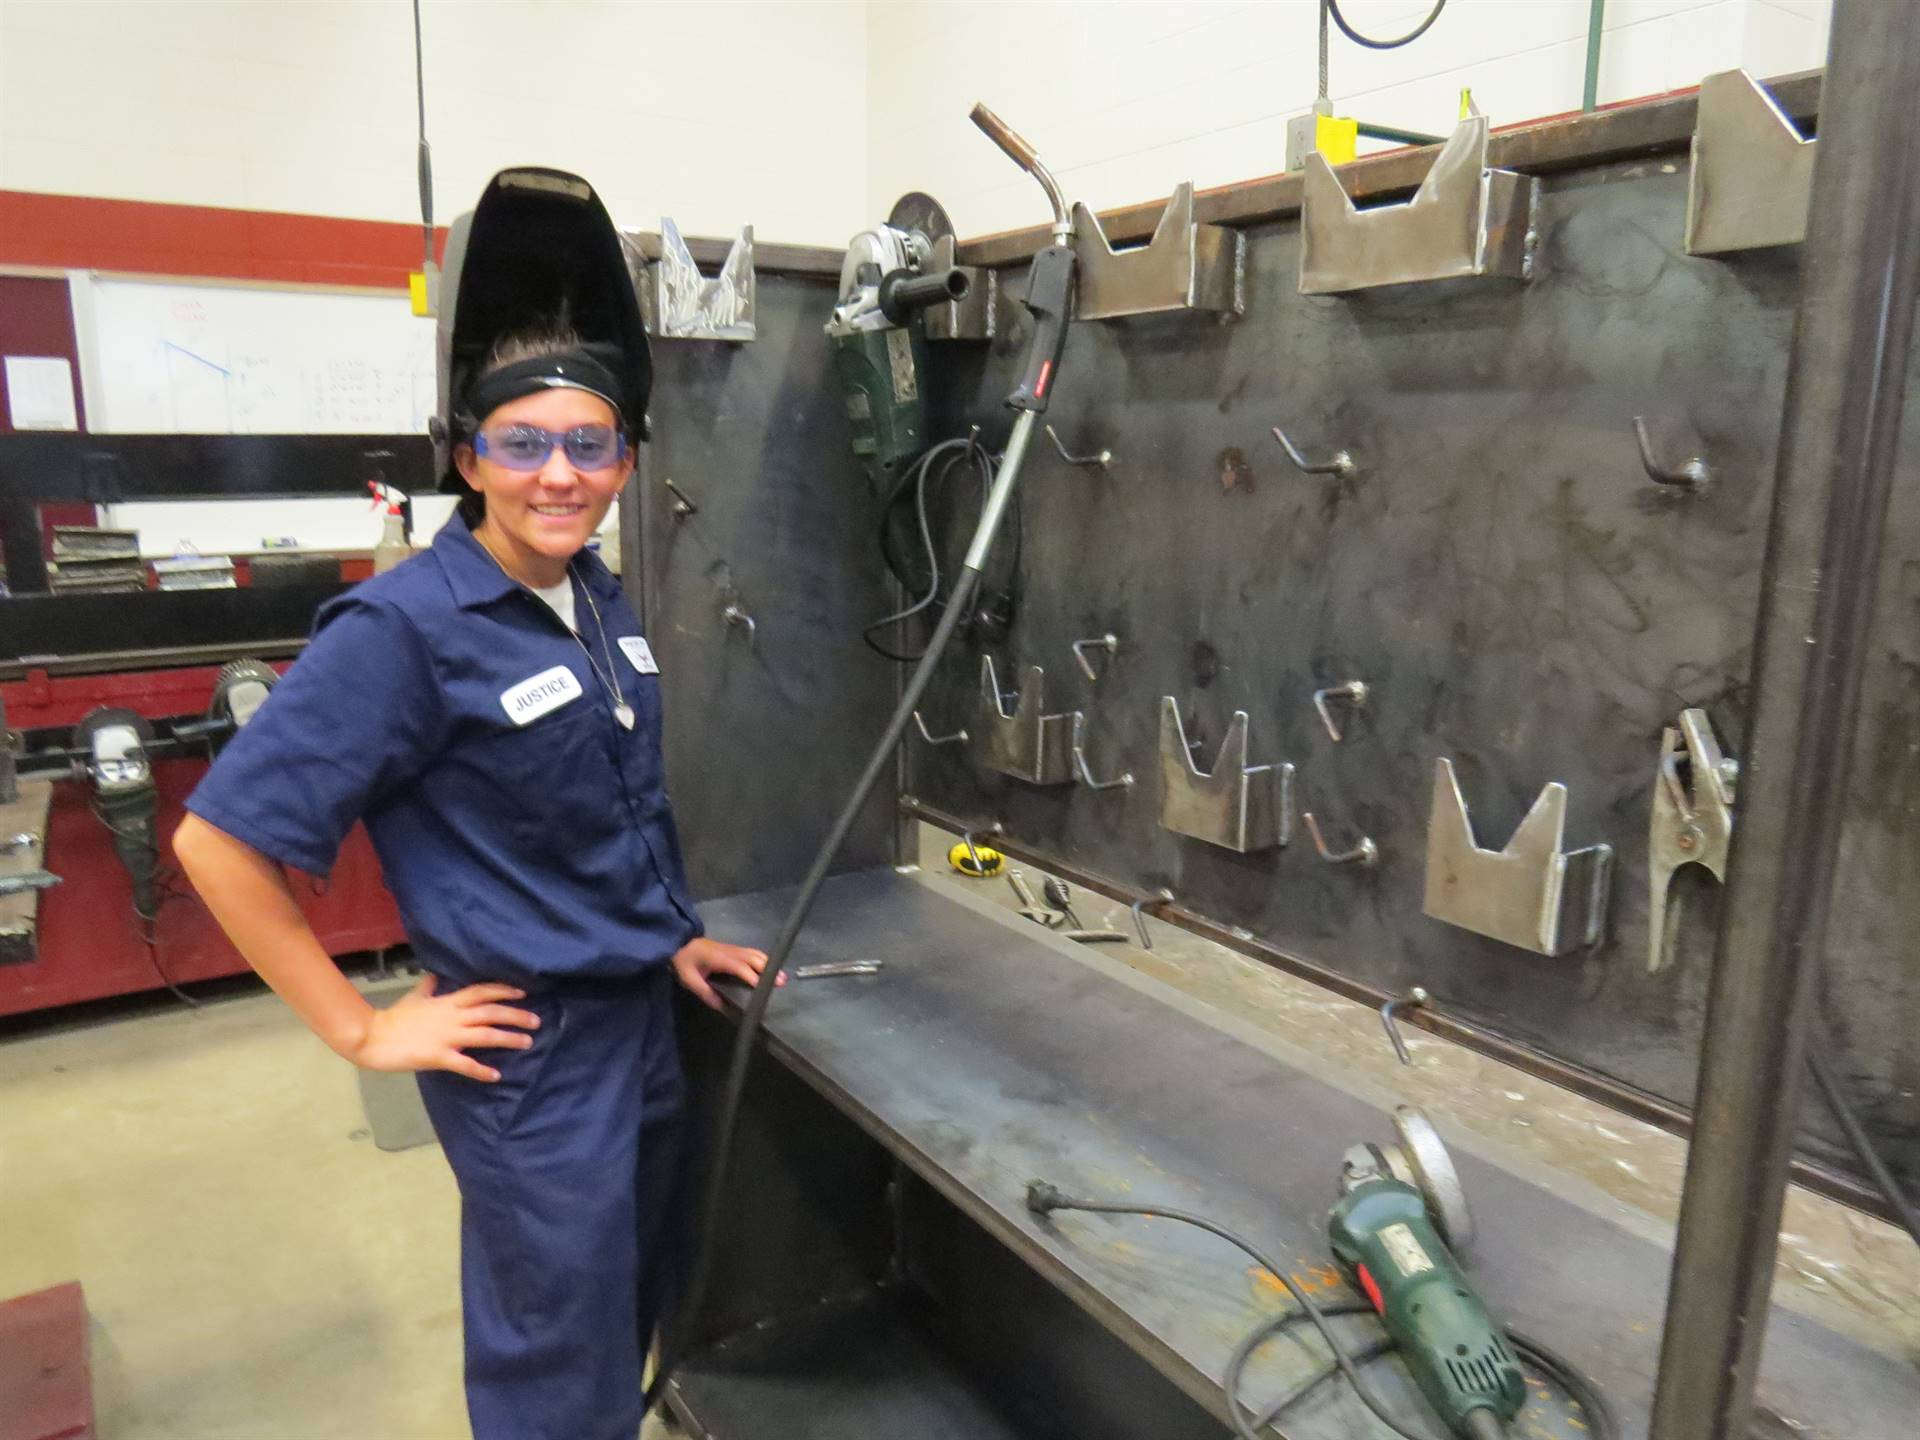 Welding student creates a design to be used for storage in the lab.